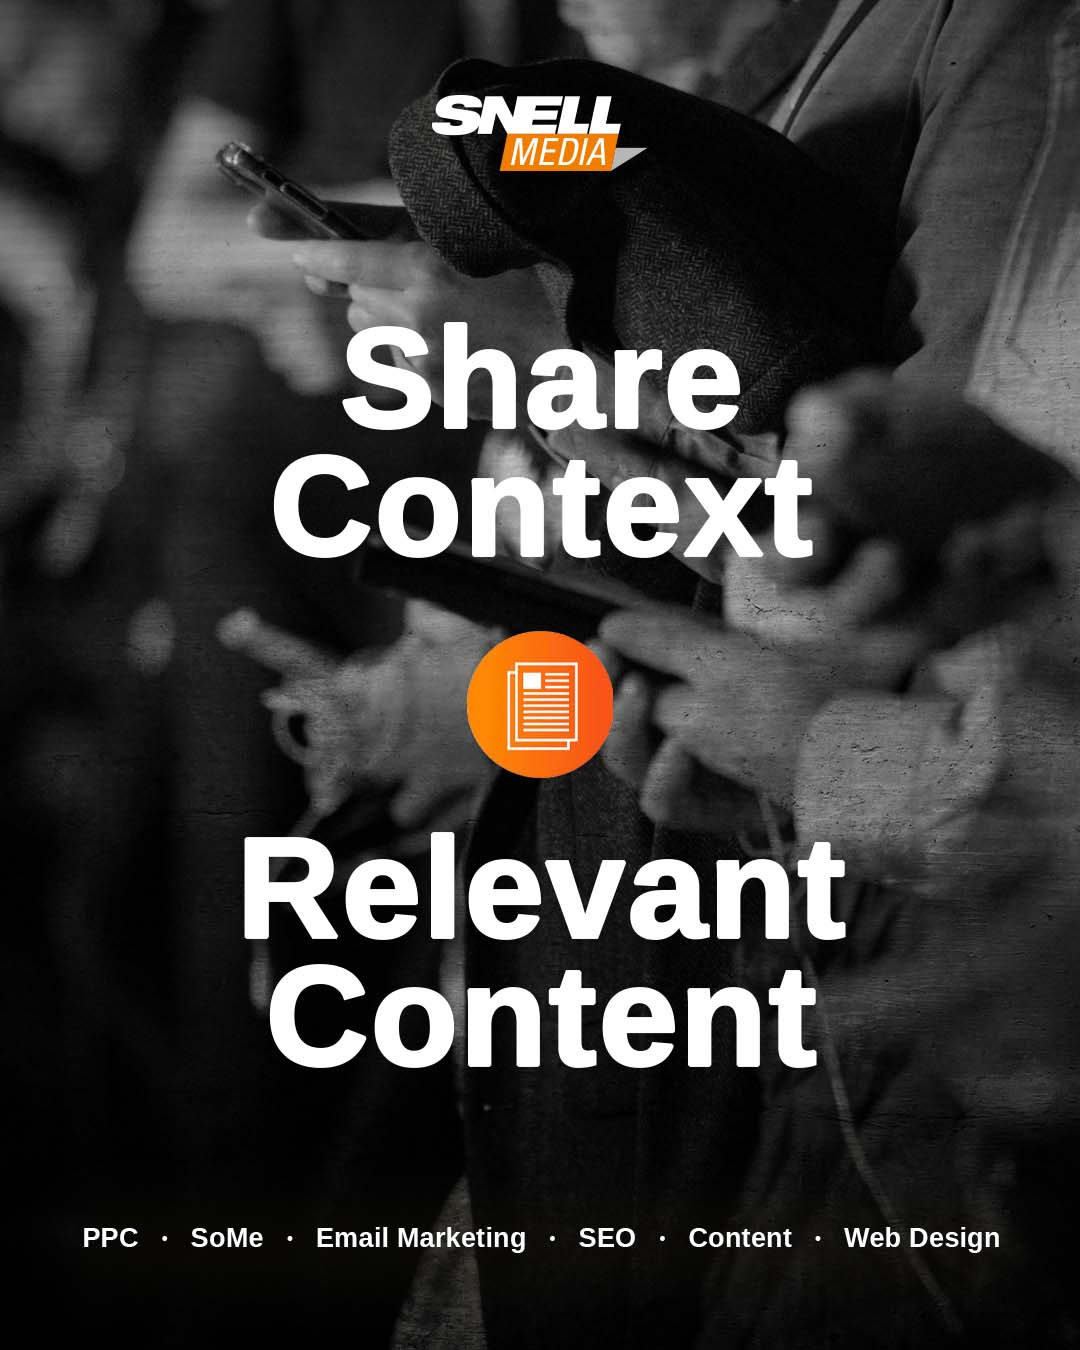 Share Context-Relevant Content